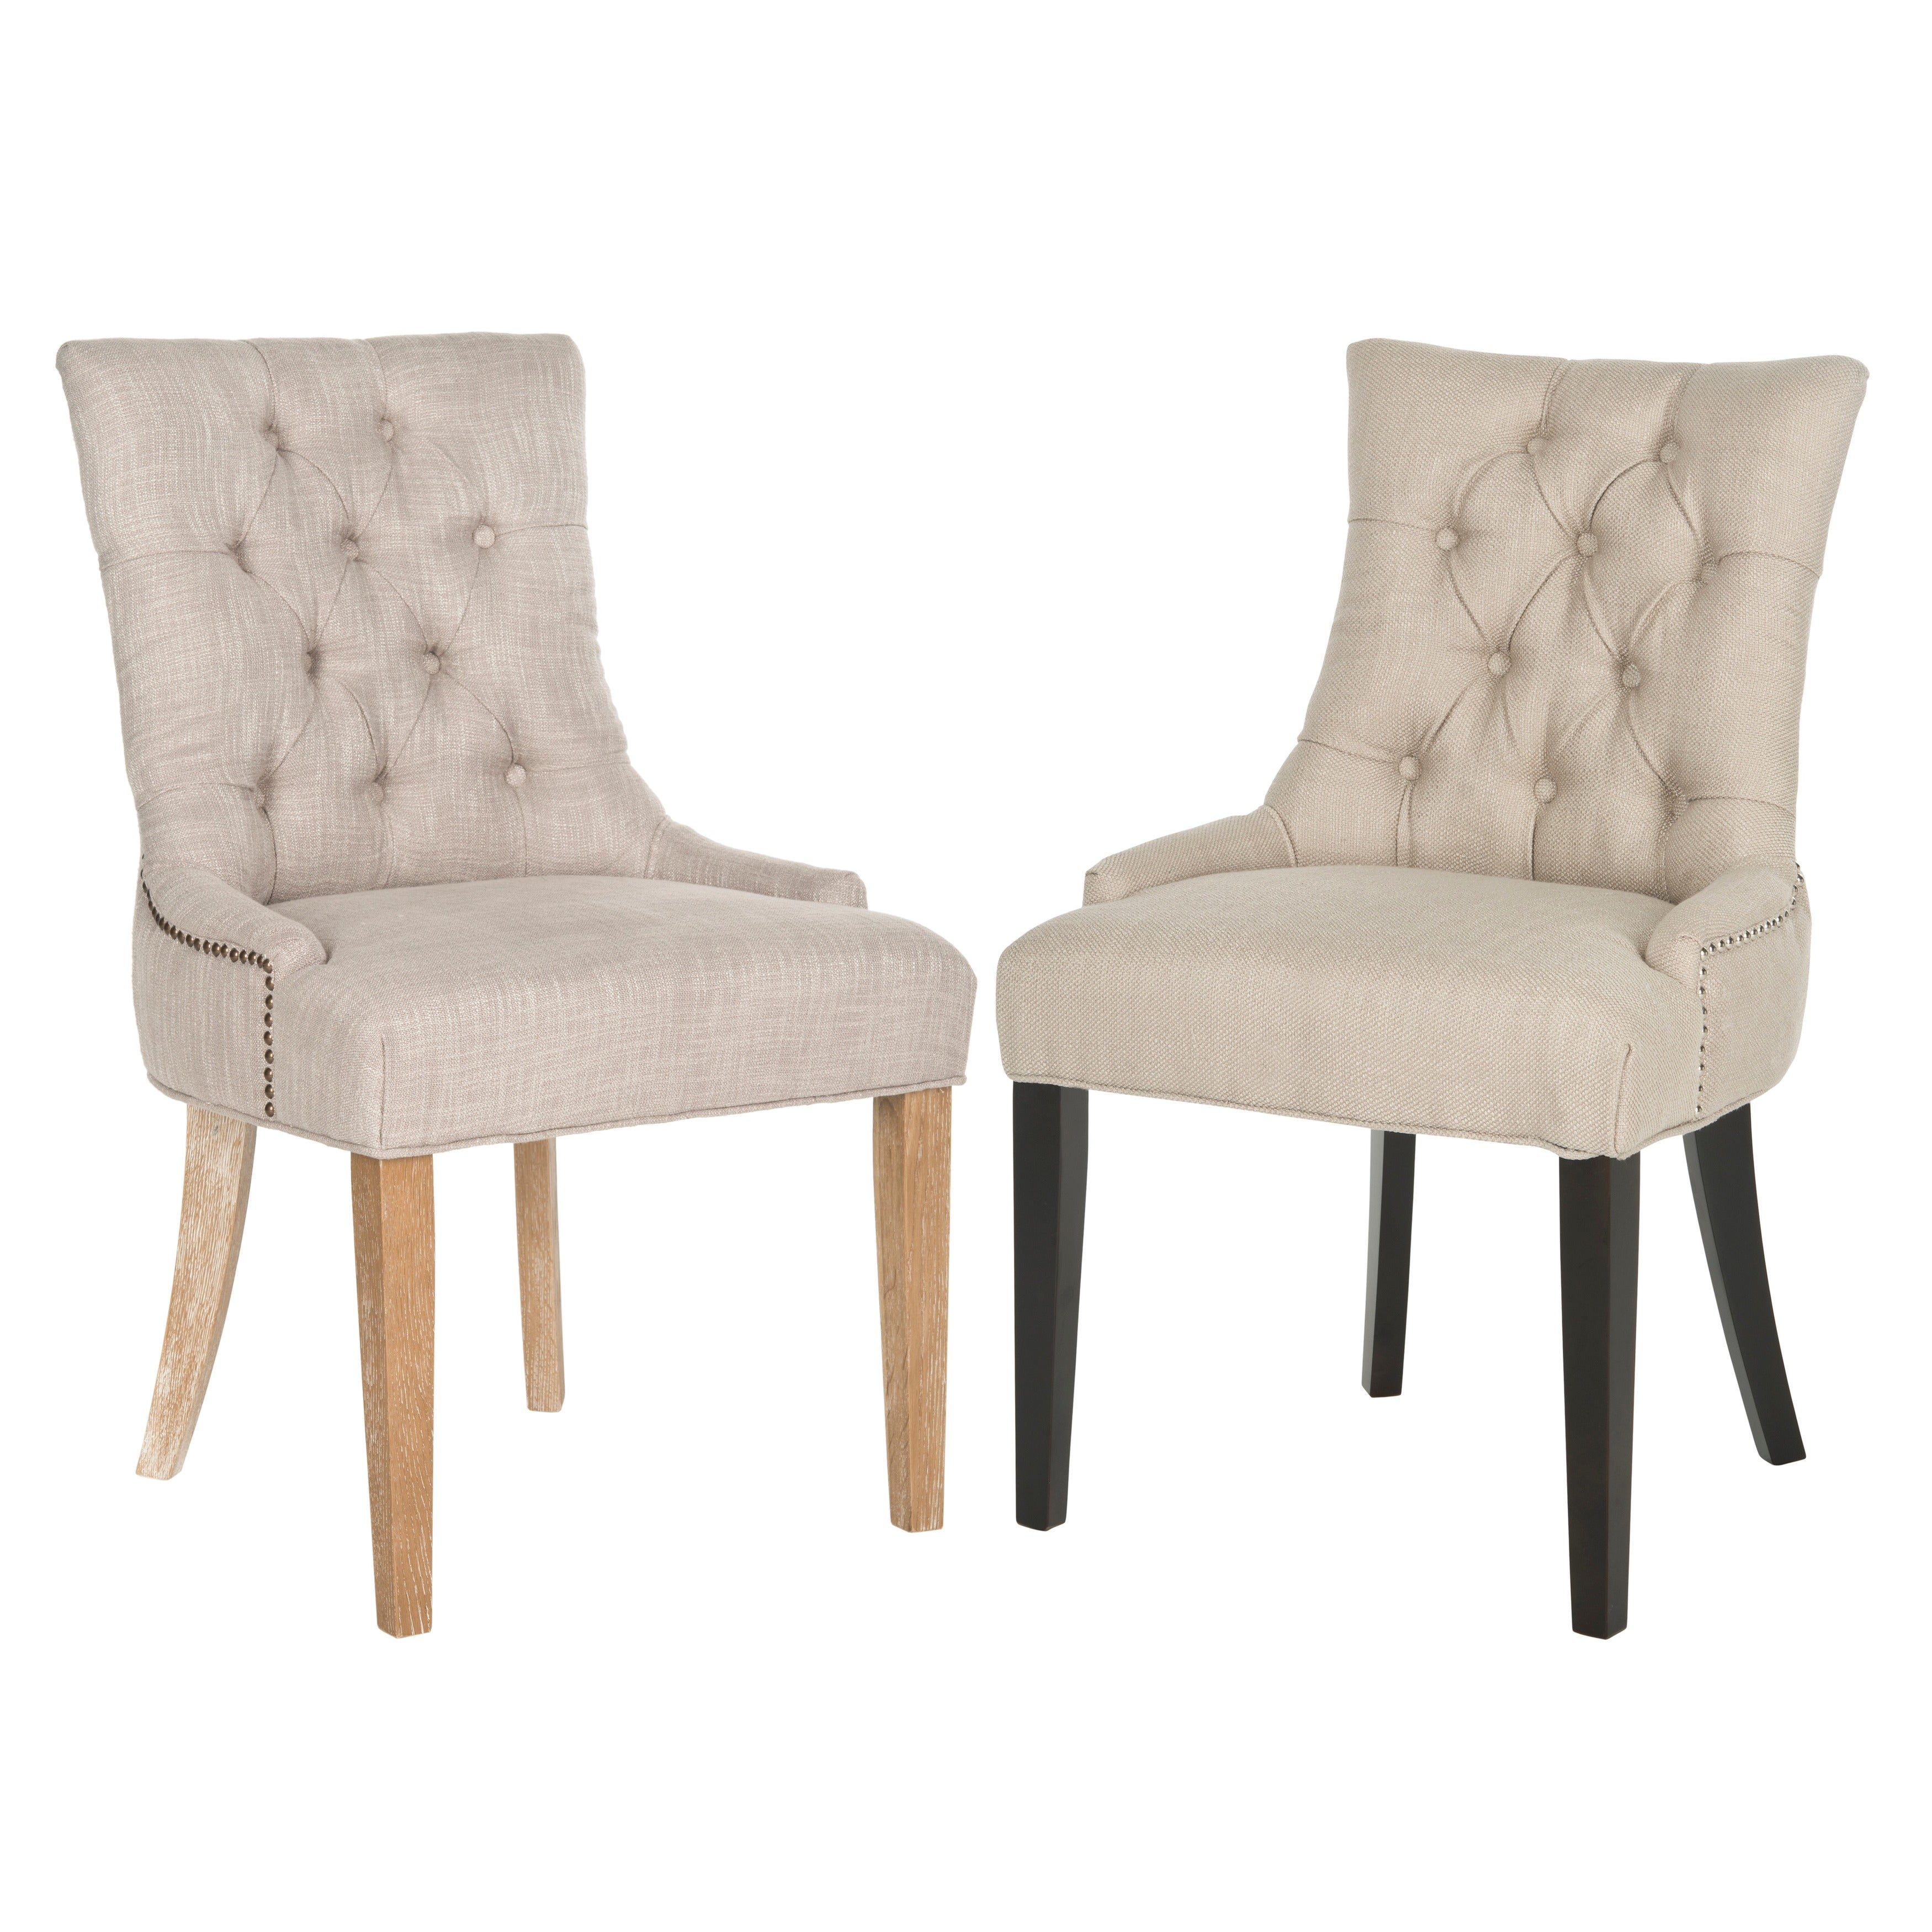 Shop safavieh en vogue dining abby viscose blend dining chairs set of 2 on sale free shipping today overstock com 8948024